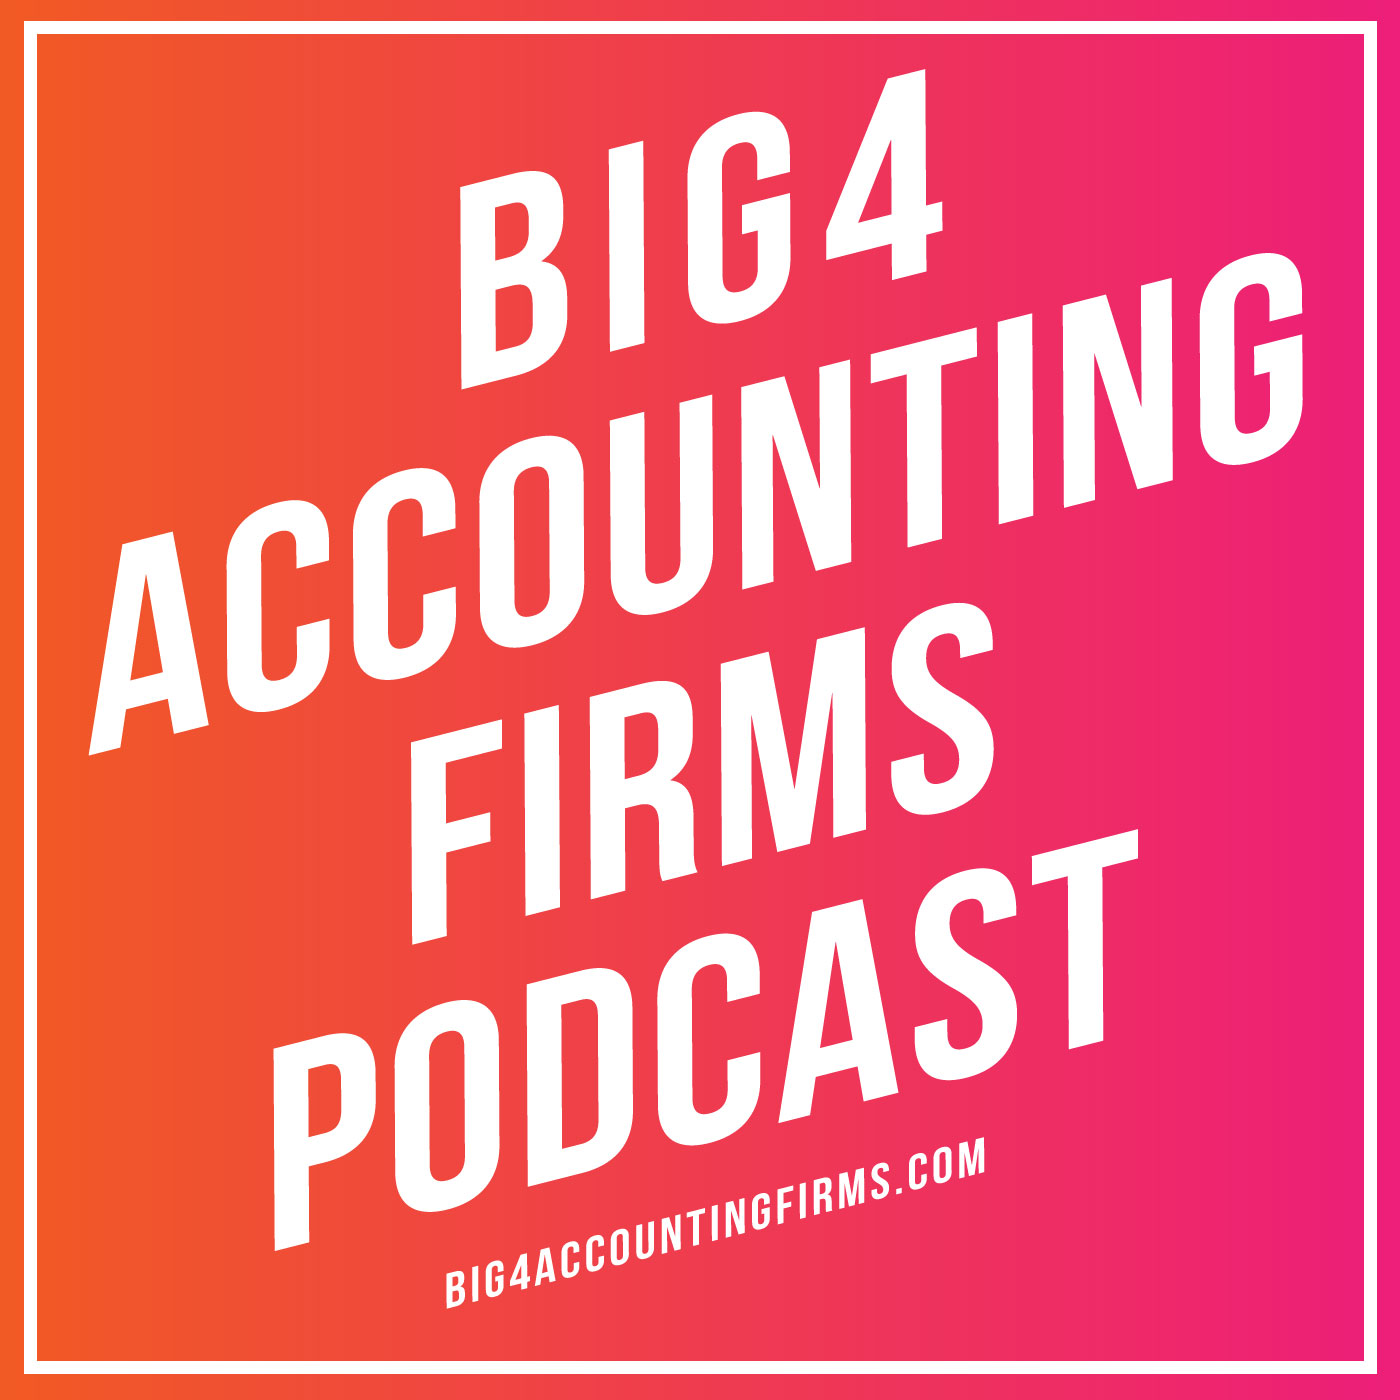 Big 4 Accounting Firms Podcast: Accounting Career Tips and Accounting News show art